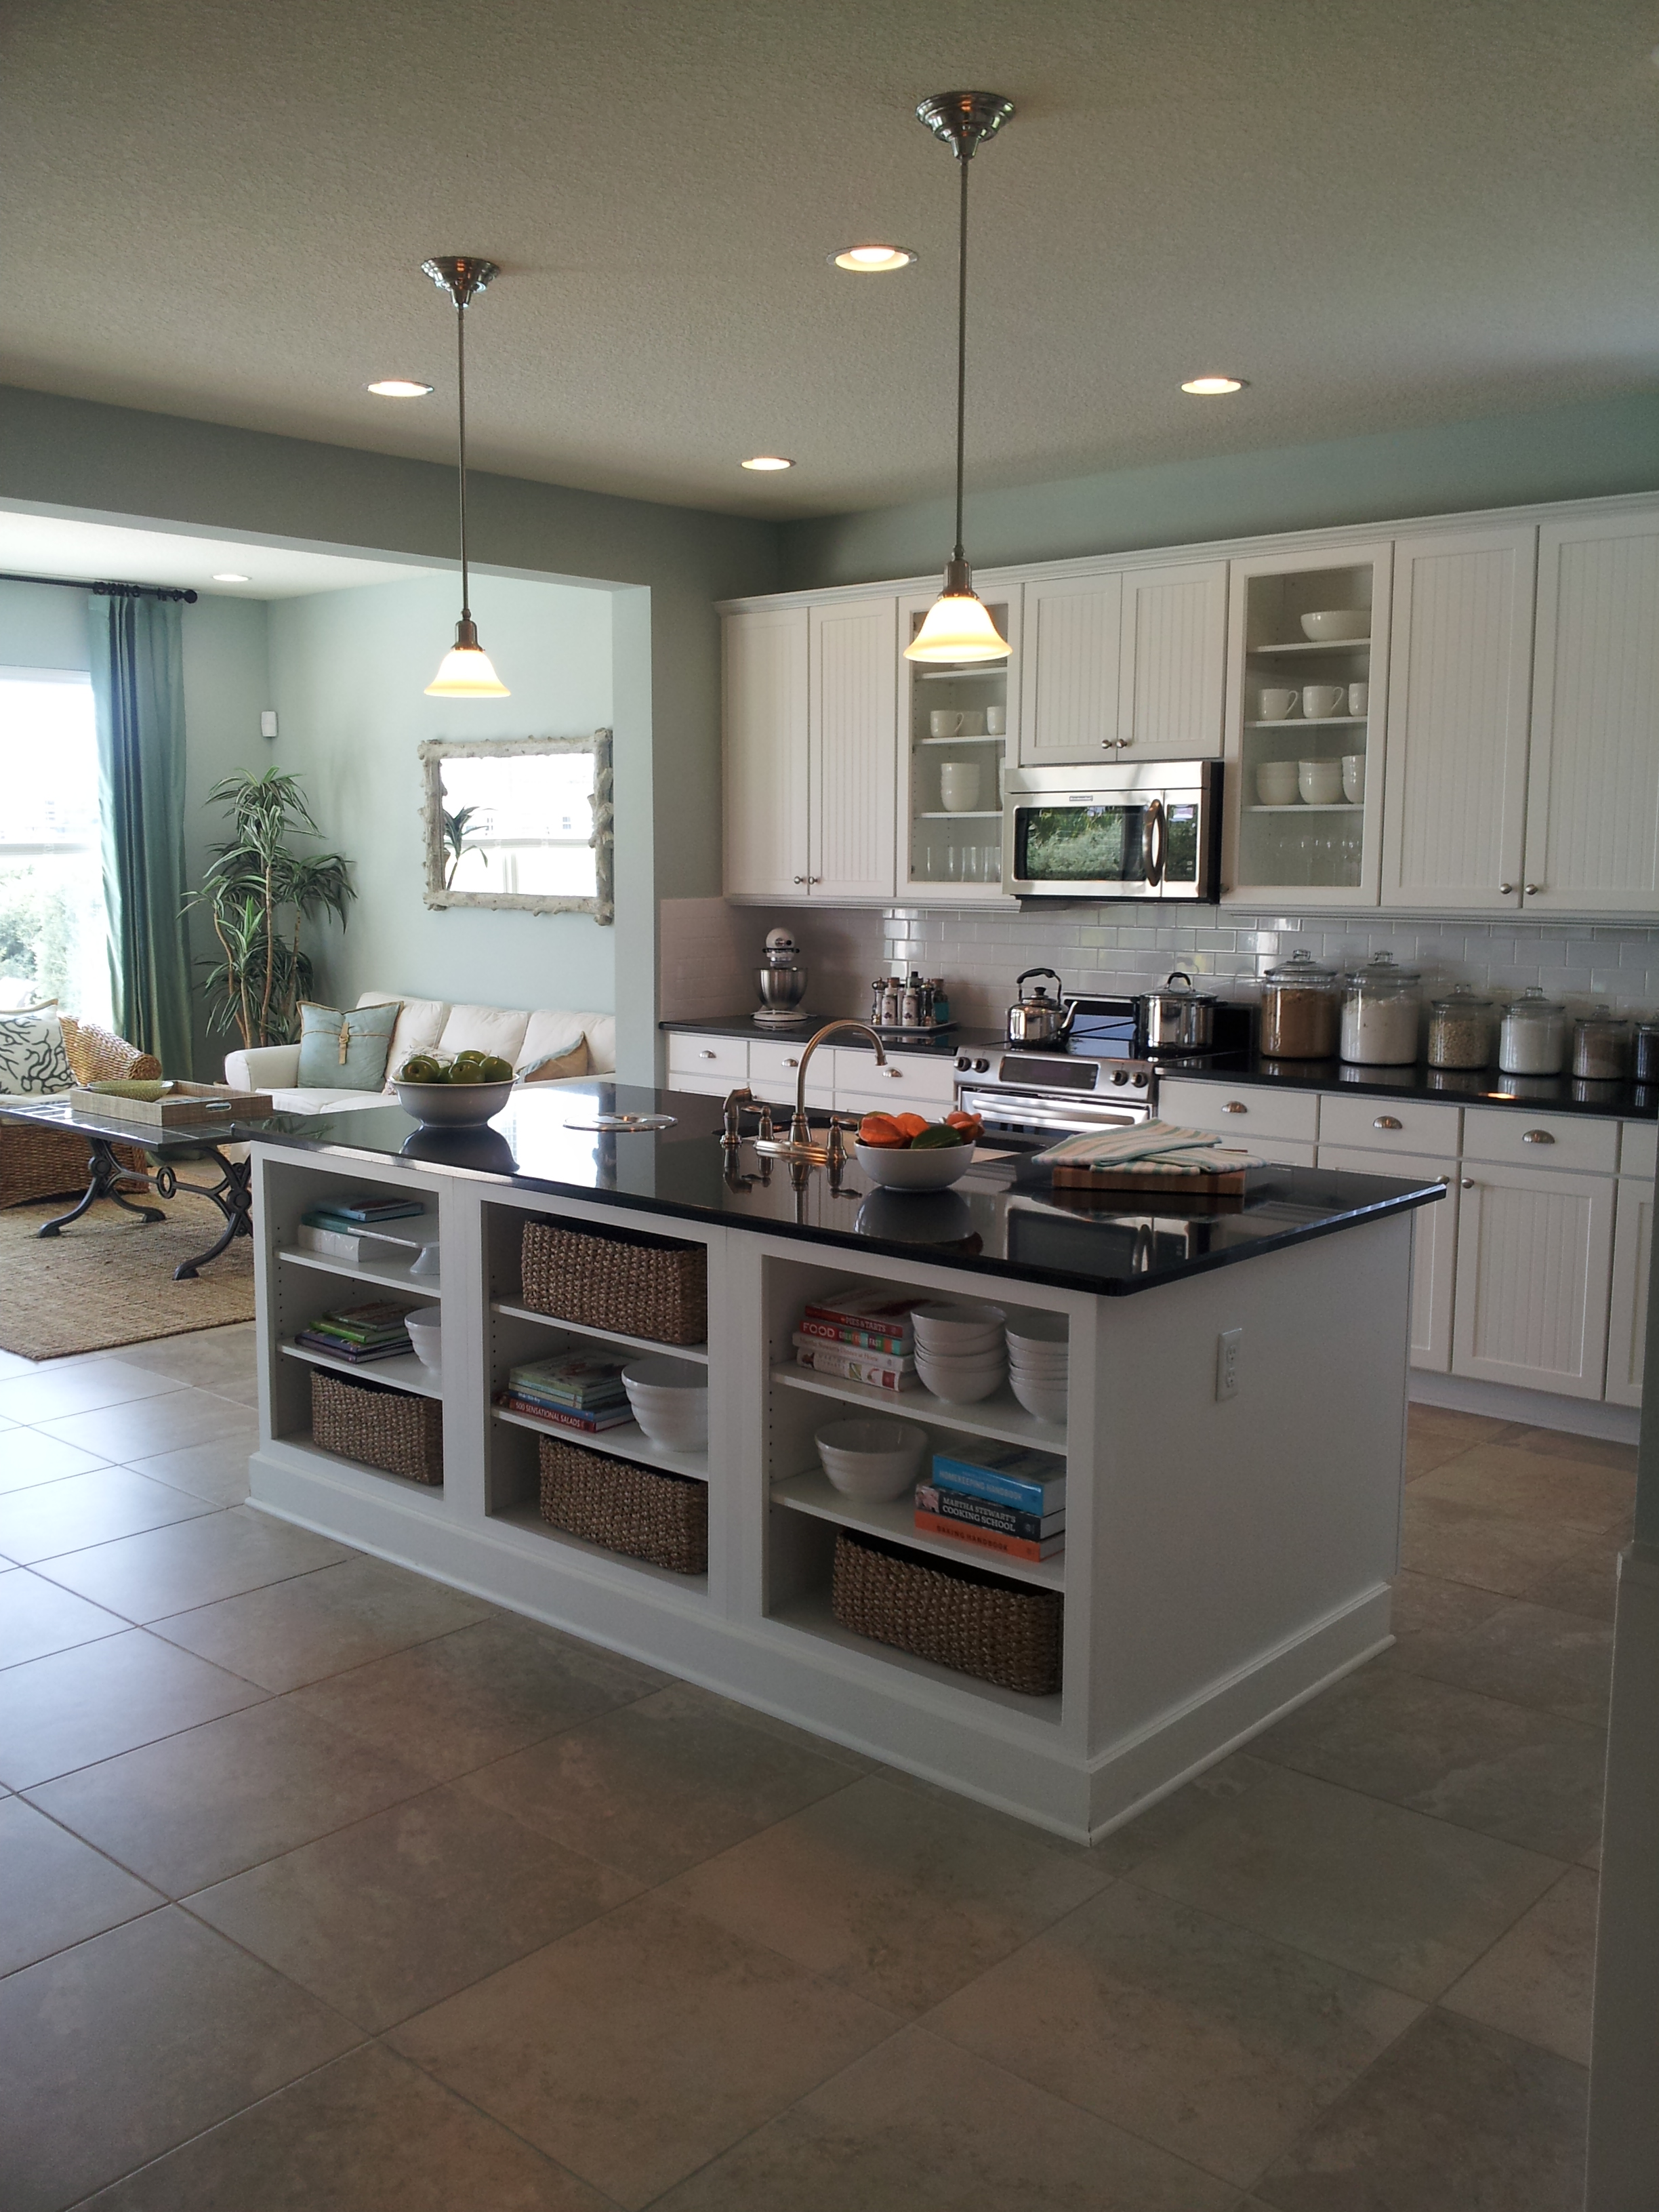 reimagining the kitchen trends for 2013 platinum key realty property